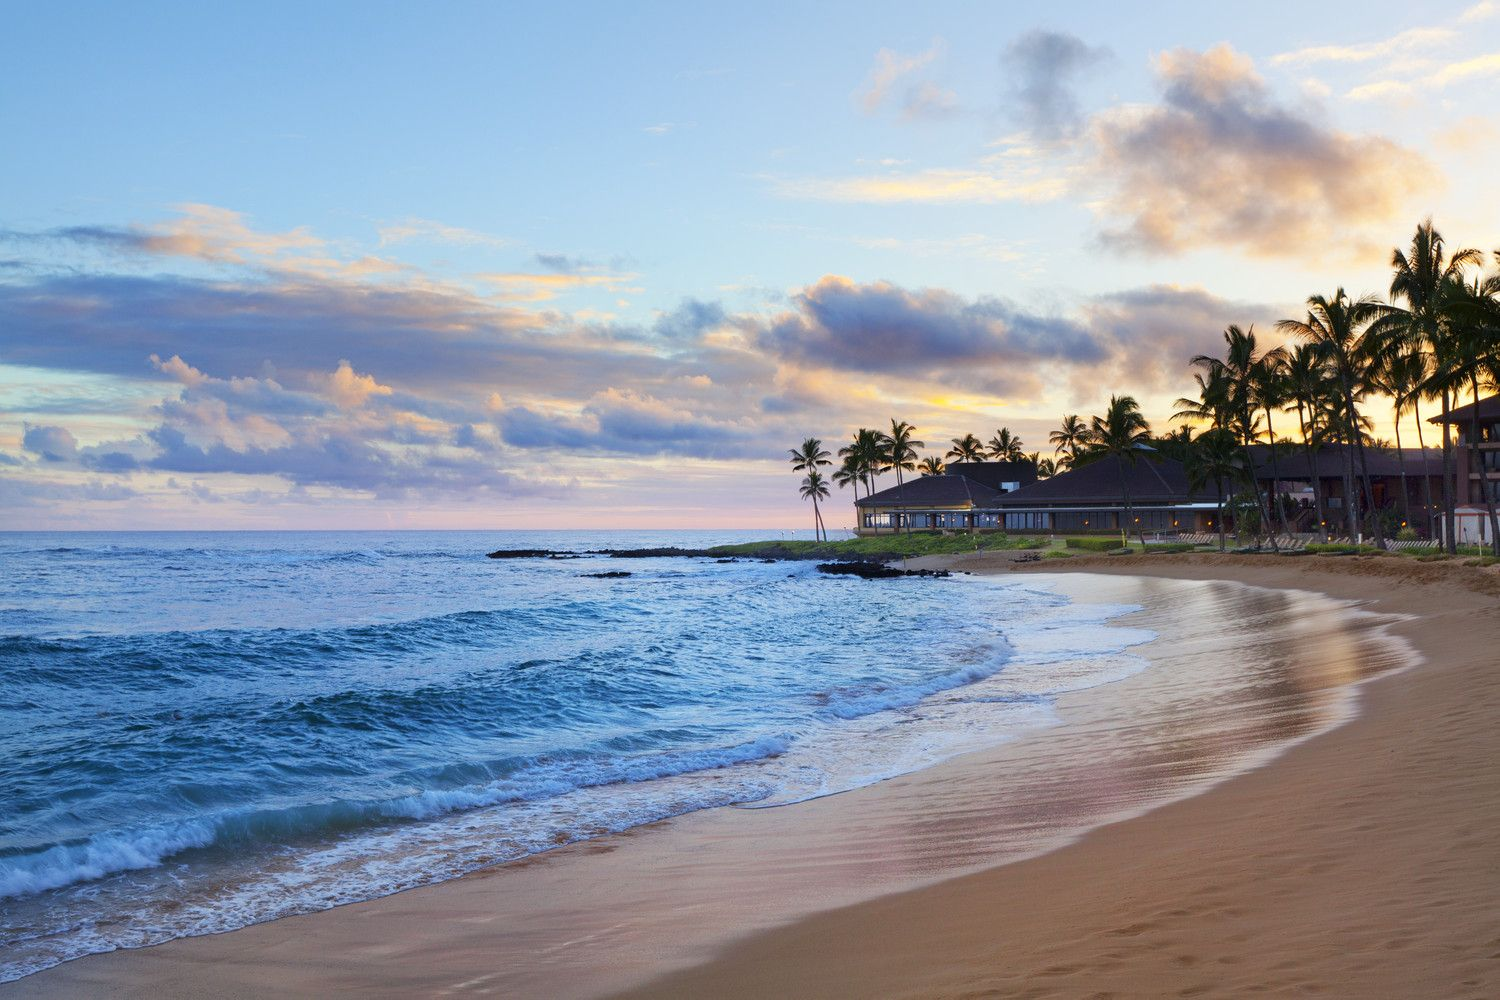 Kauai Beach Wedding - Honeymoon Registry